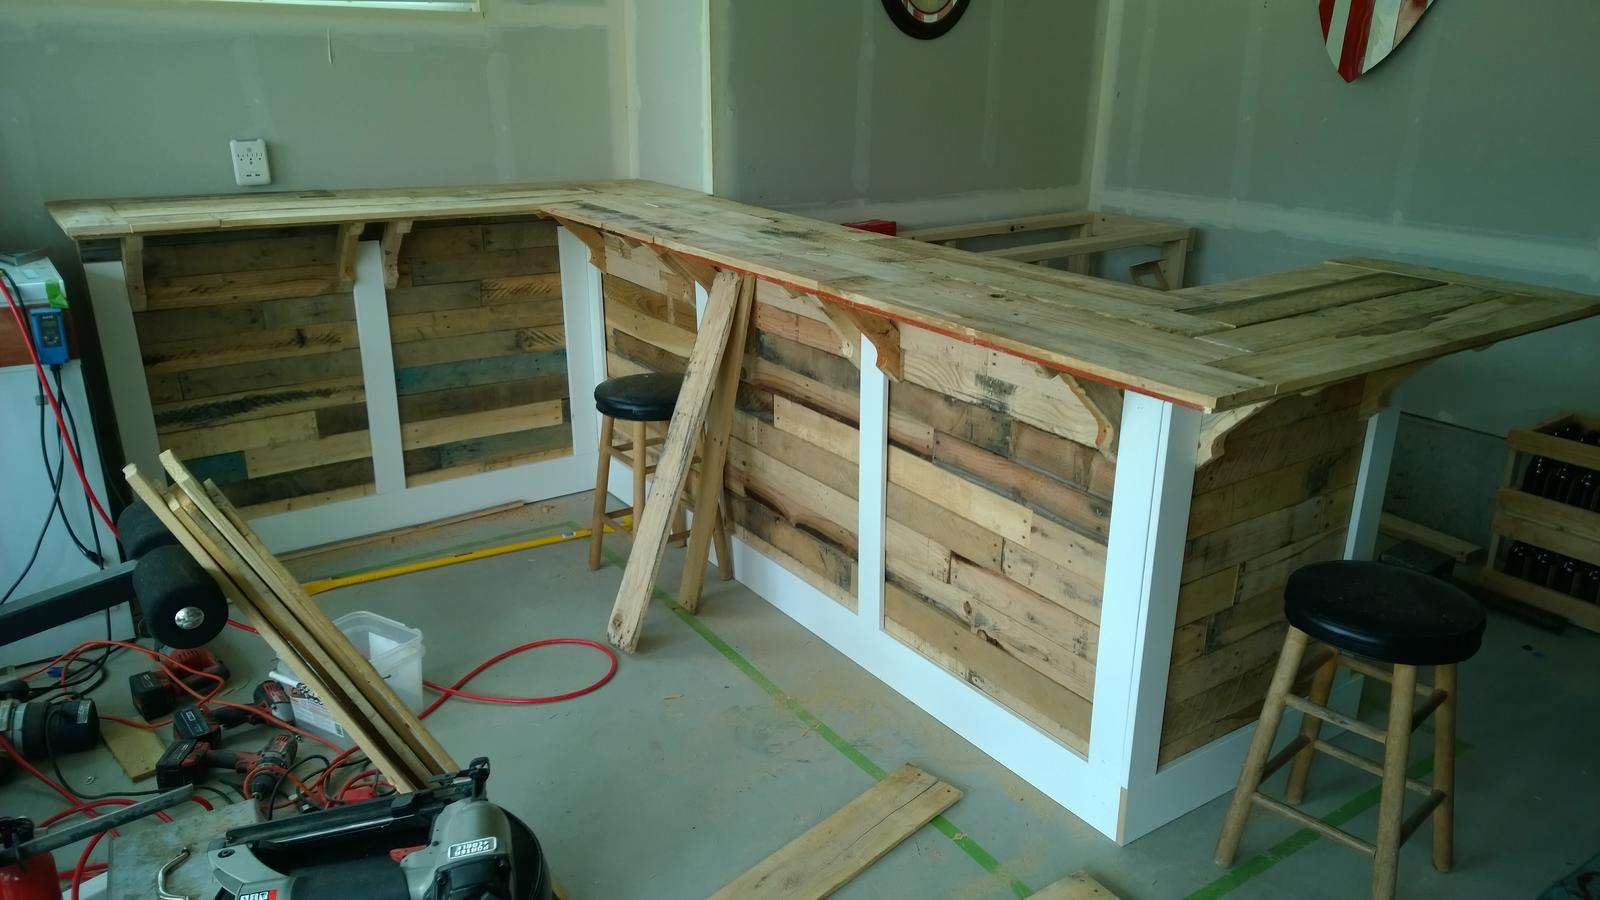 Pallet Wood Garage Bar Build | HomeBrewTalk.com - Beer, Wine, Mead ...